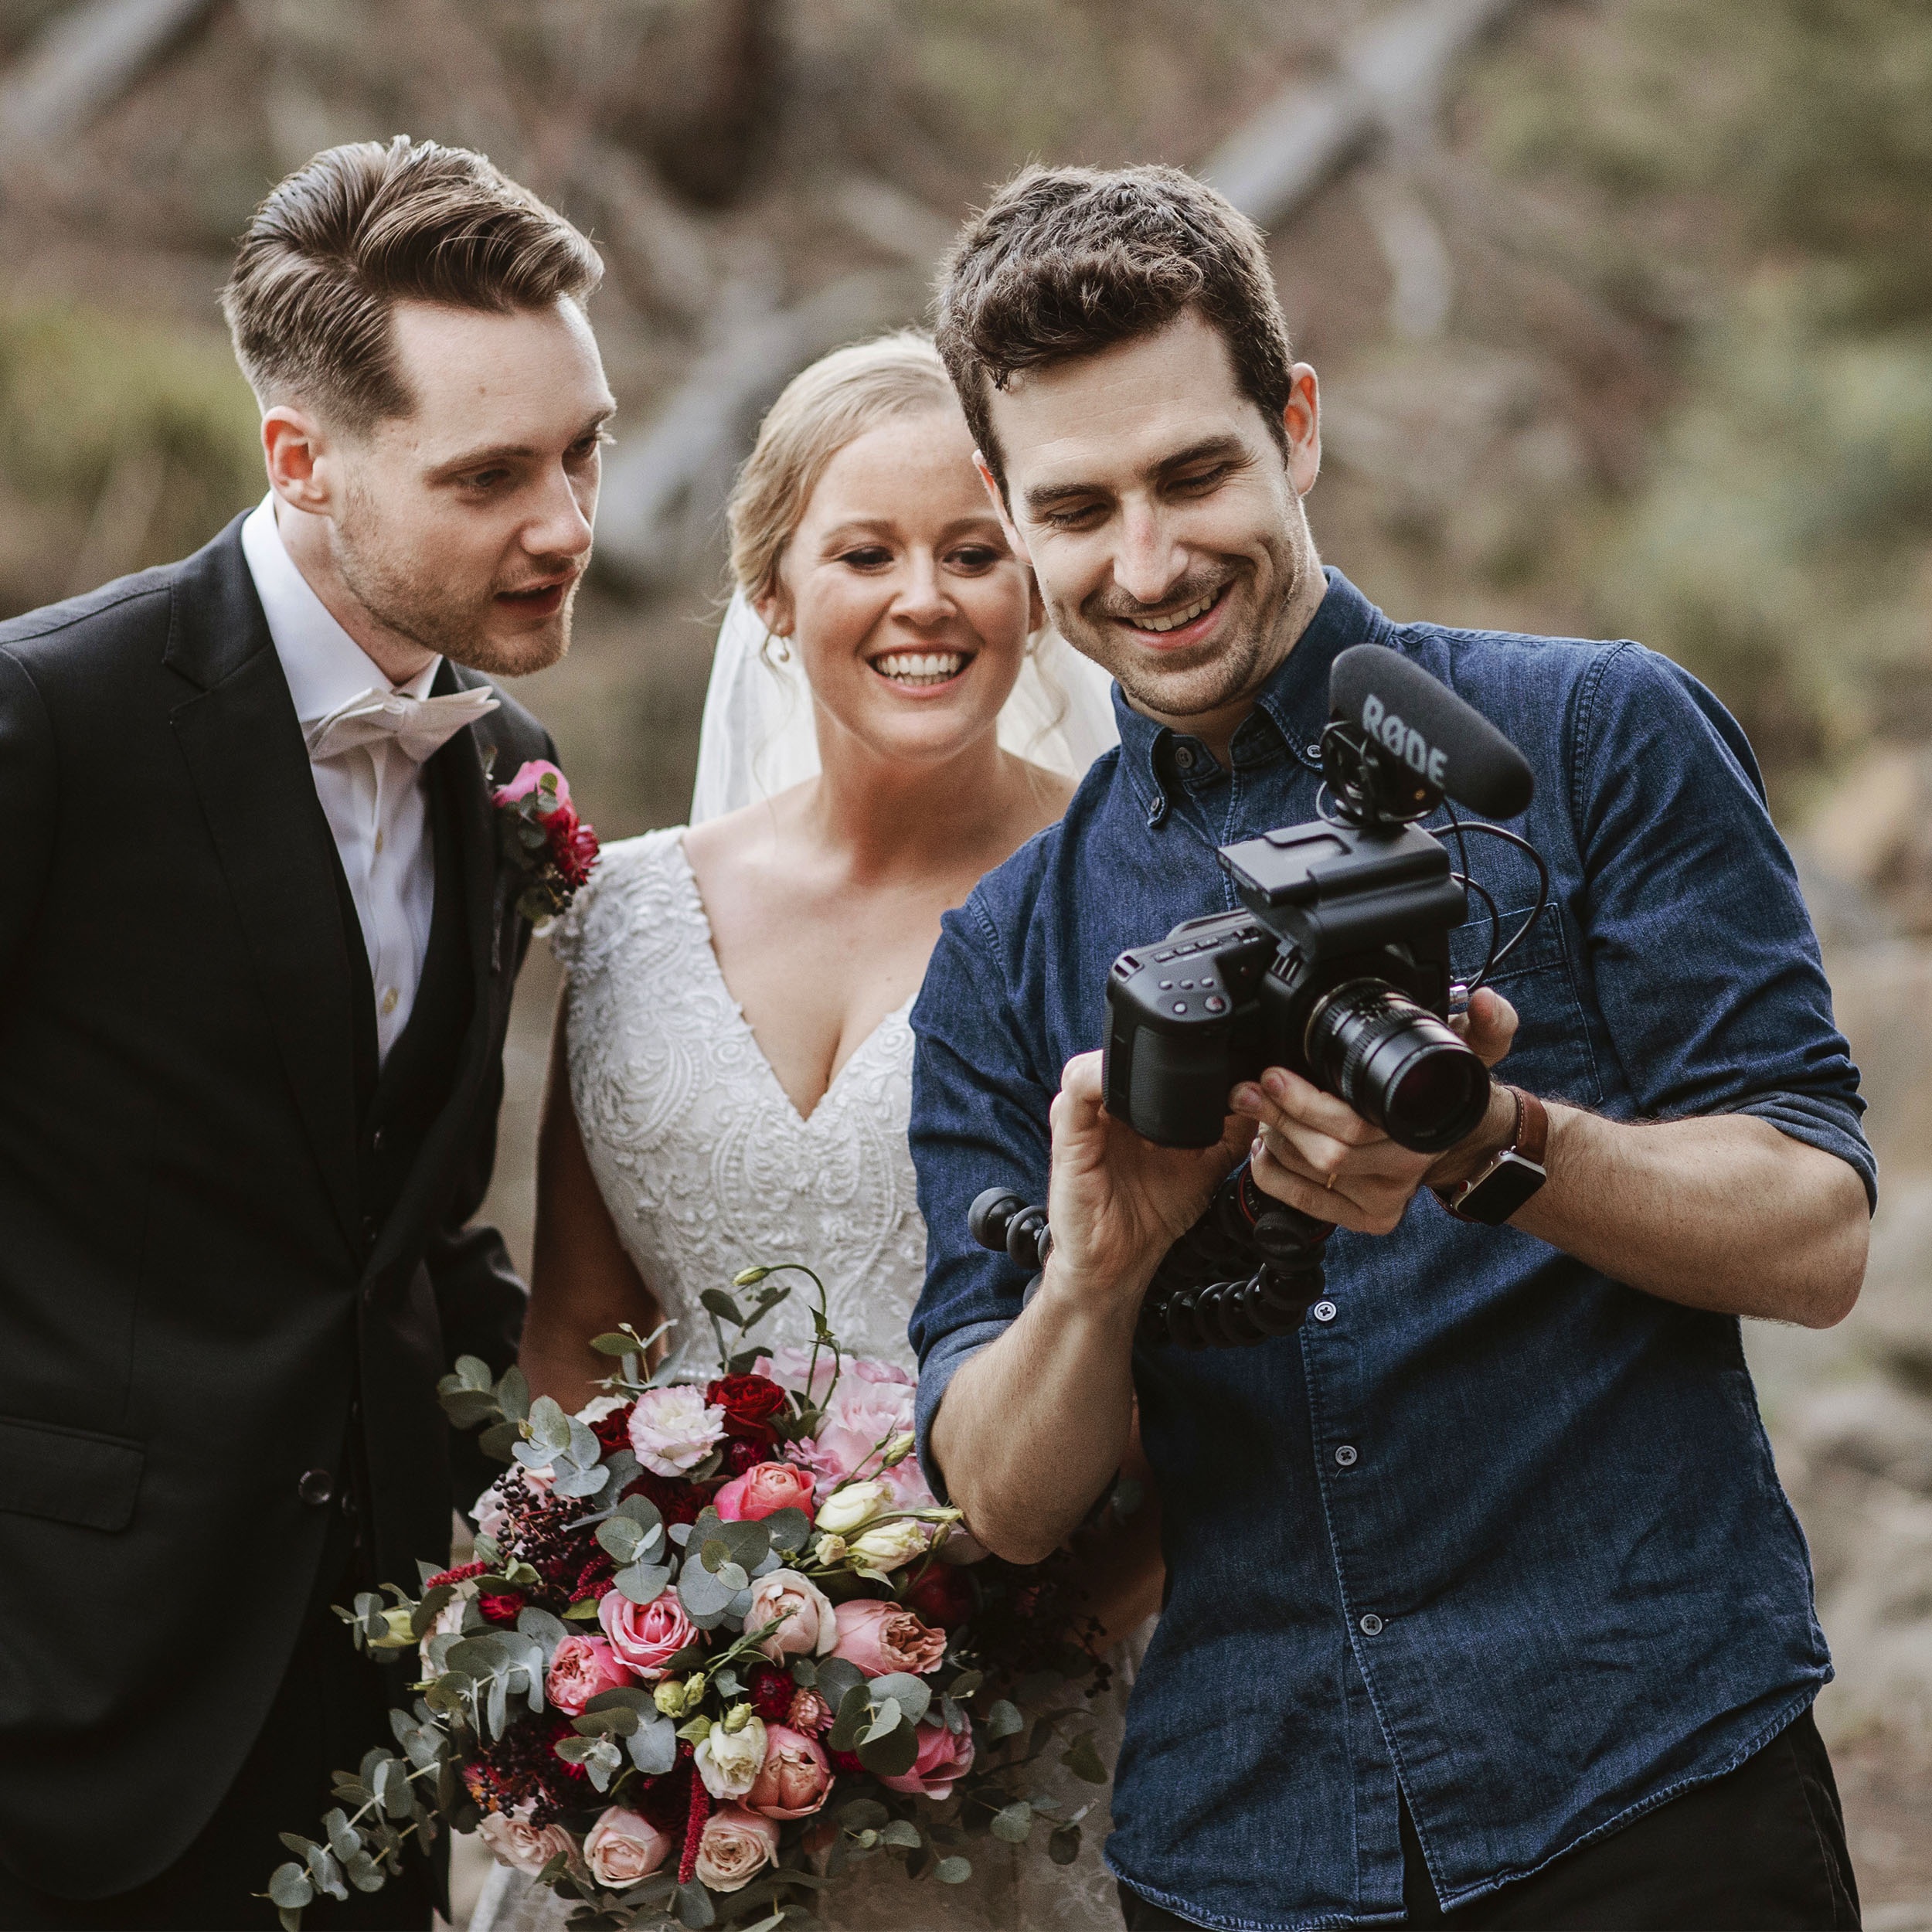 Tea Wales, wedding videographer